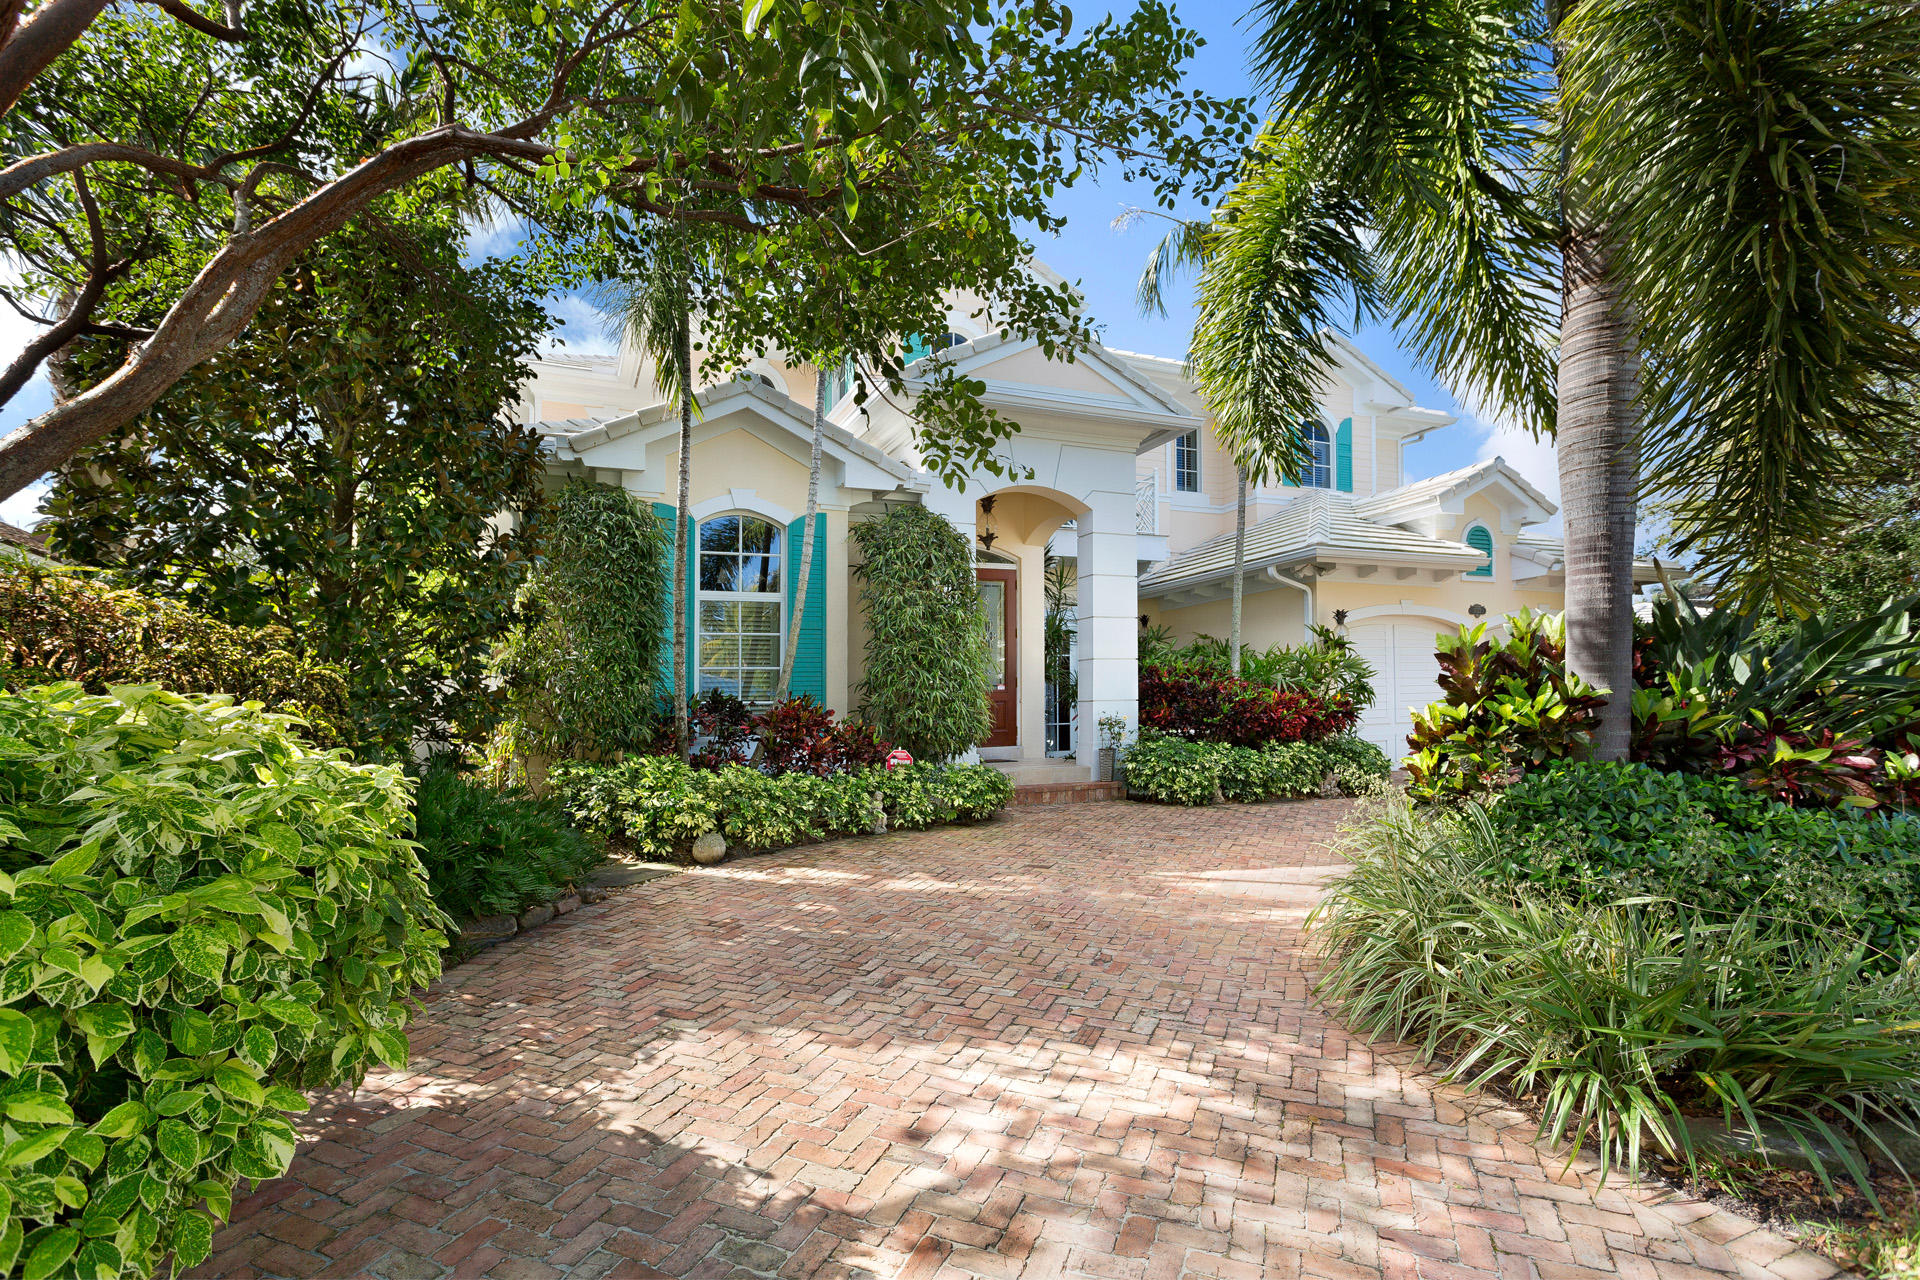 Photo of 1032 Vista Del Mar Drive N, Delray Beach, FL 33483